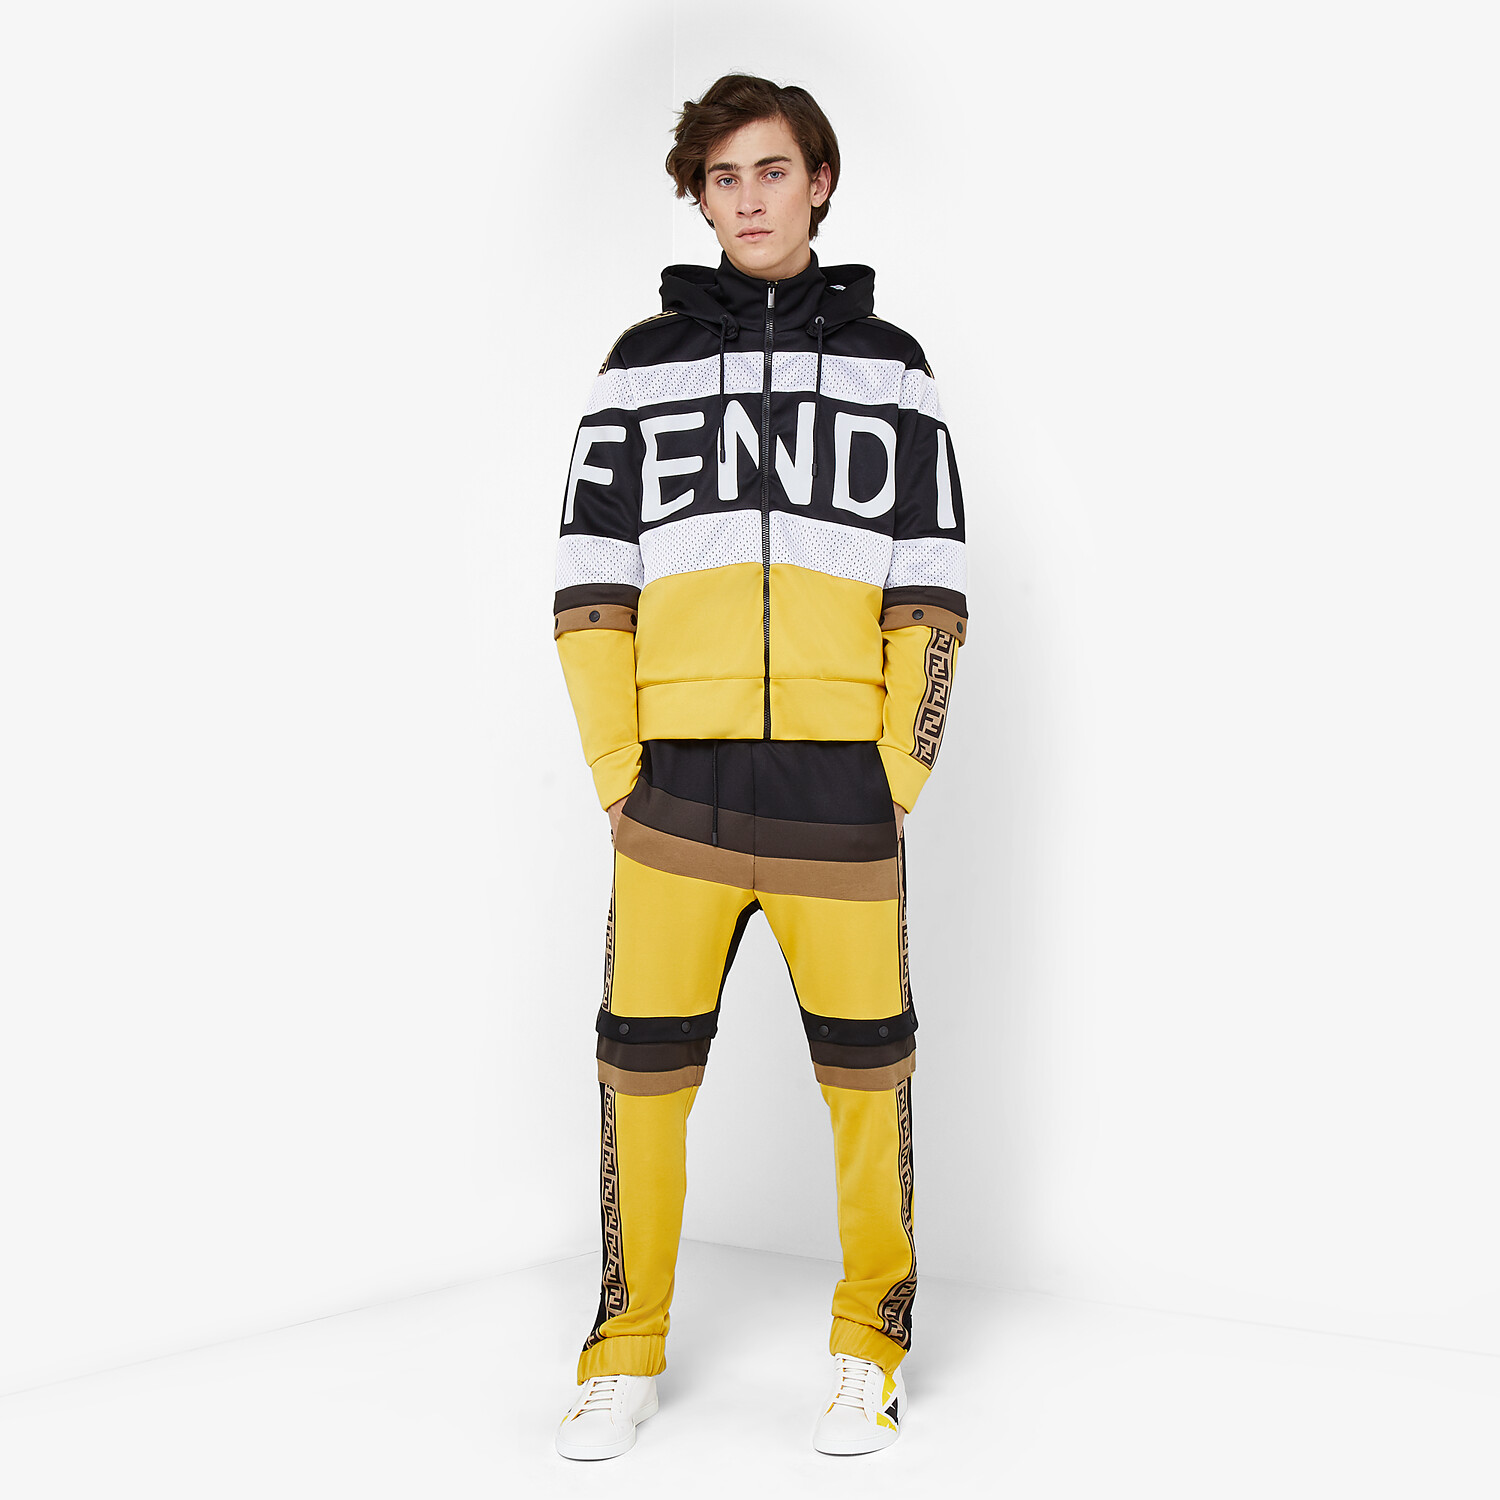 FENDI SWEATSHIRT - Multicolour acetate sweatshirt - view 4 detail